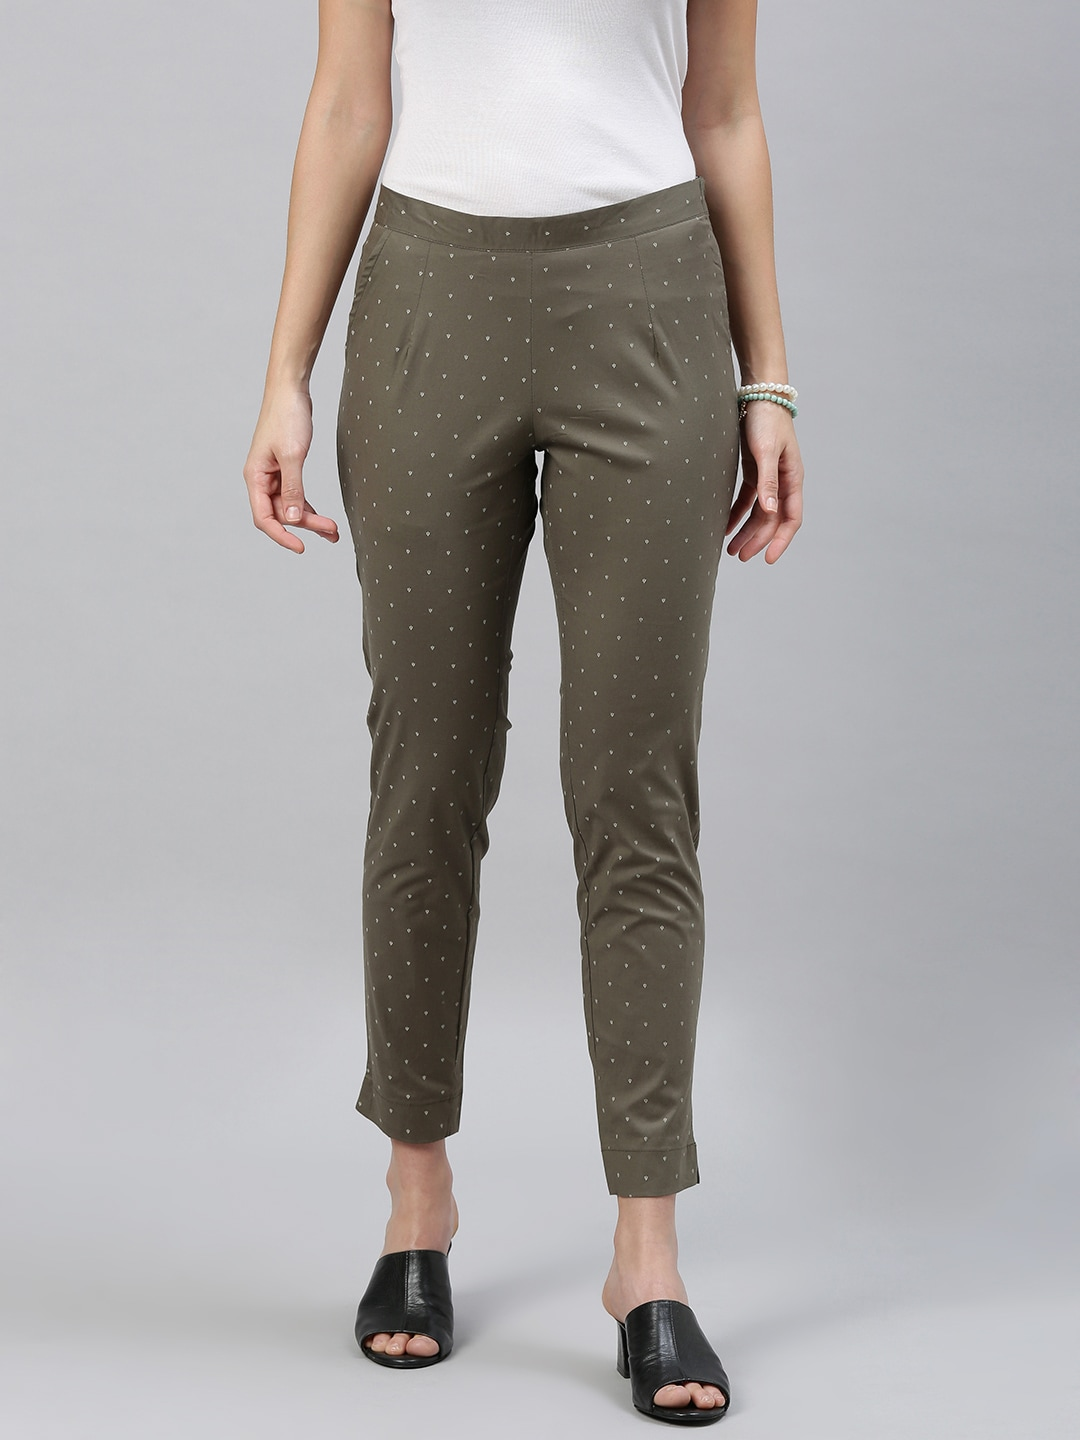 ETIQUETTE Women Green & Off-White Slim Fit Printed Cropped Cigarette Trousers